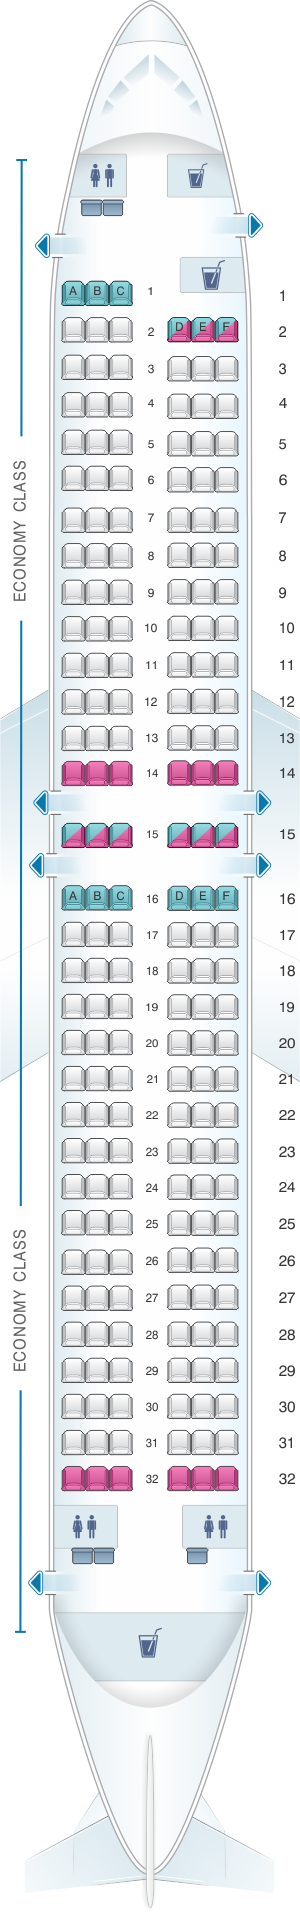 Seat map for Blue Panorama Boeing B737 800